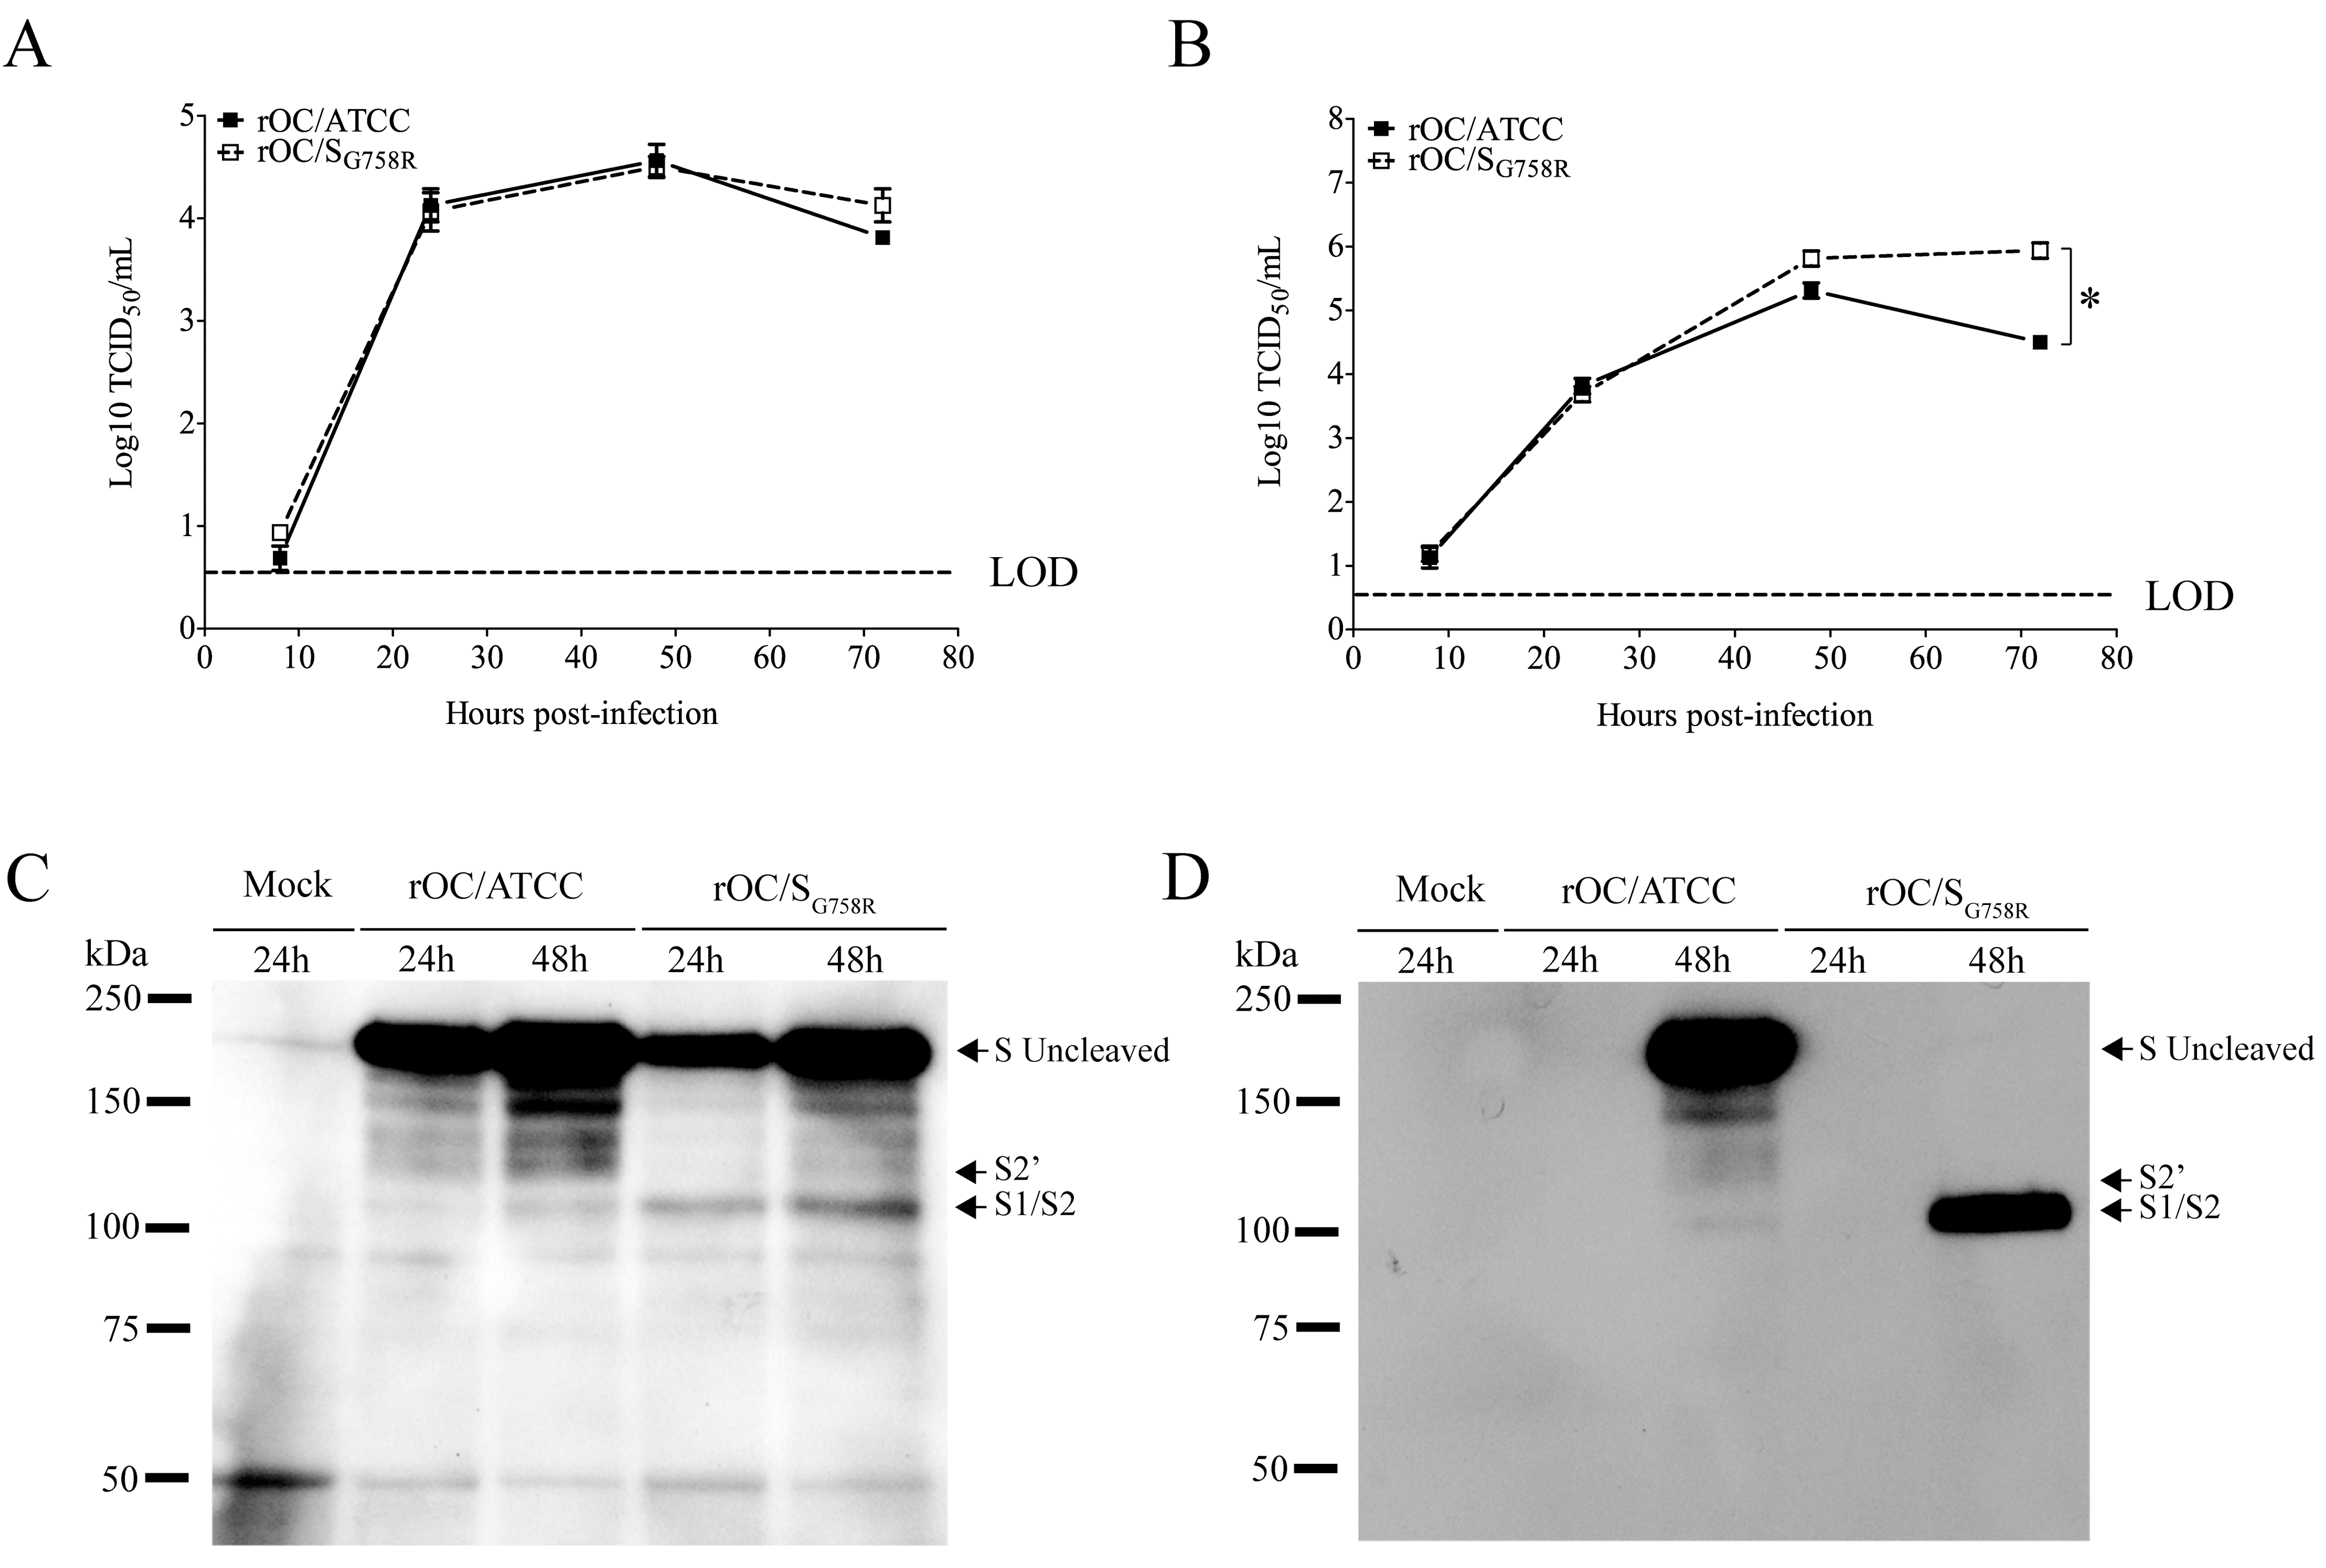 The S glycoprotein harboring a predominant point mutation found in clinical isolates was cleaved more efficiently in supernatant of CNS cells.